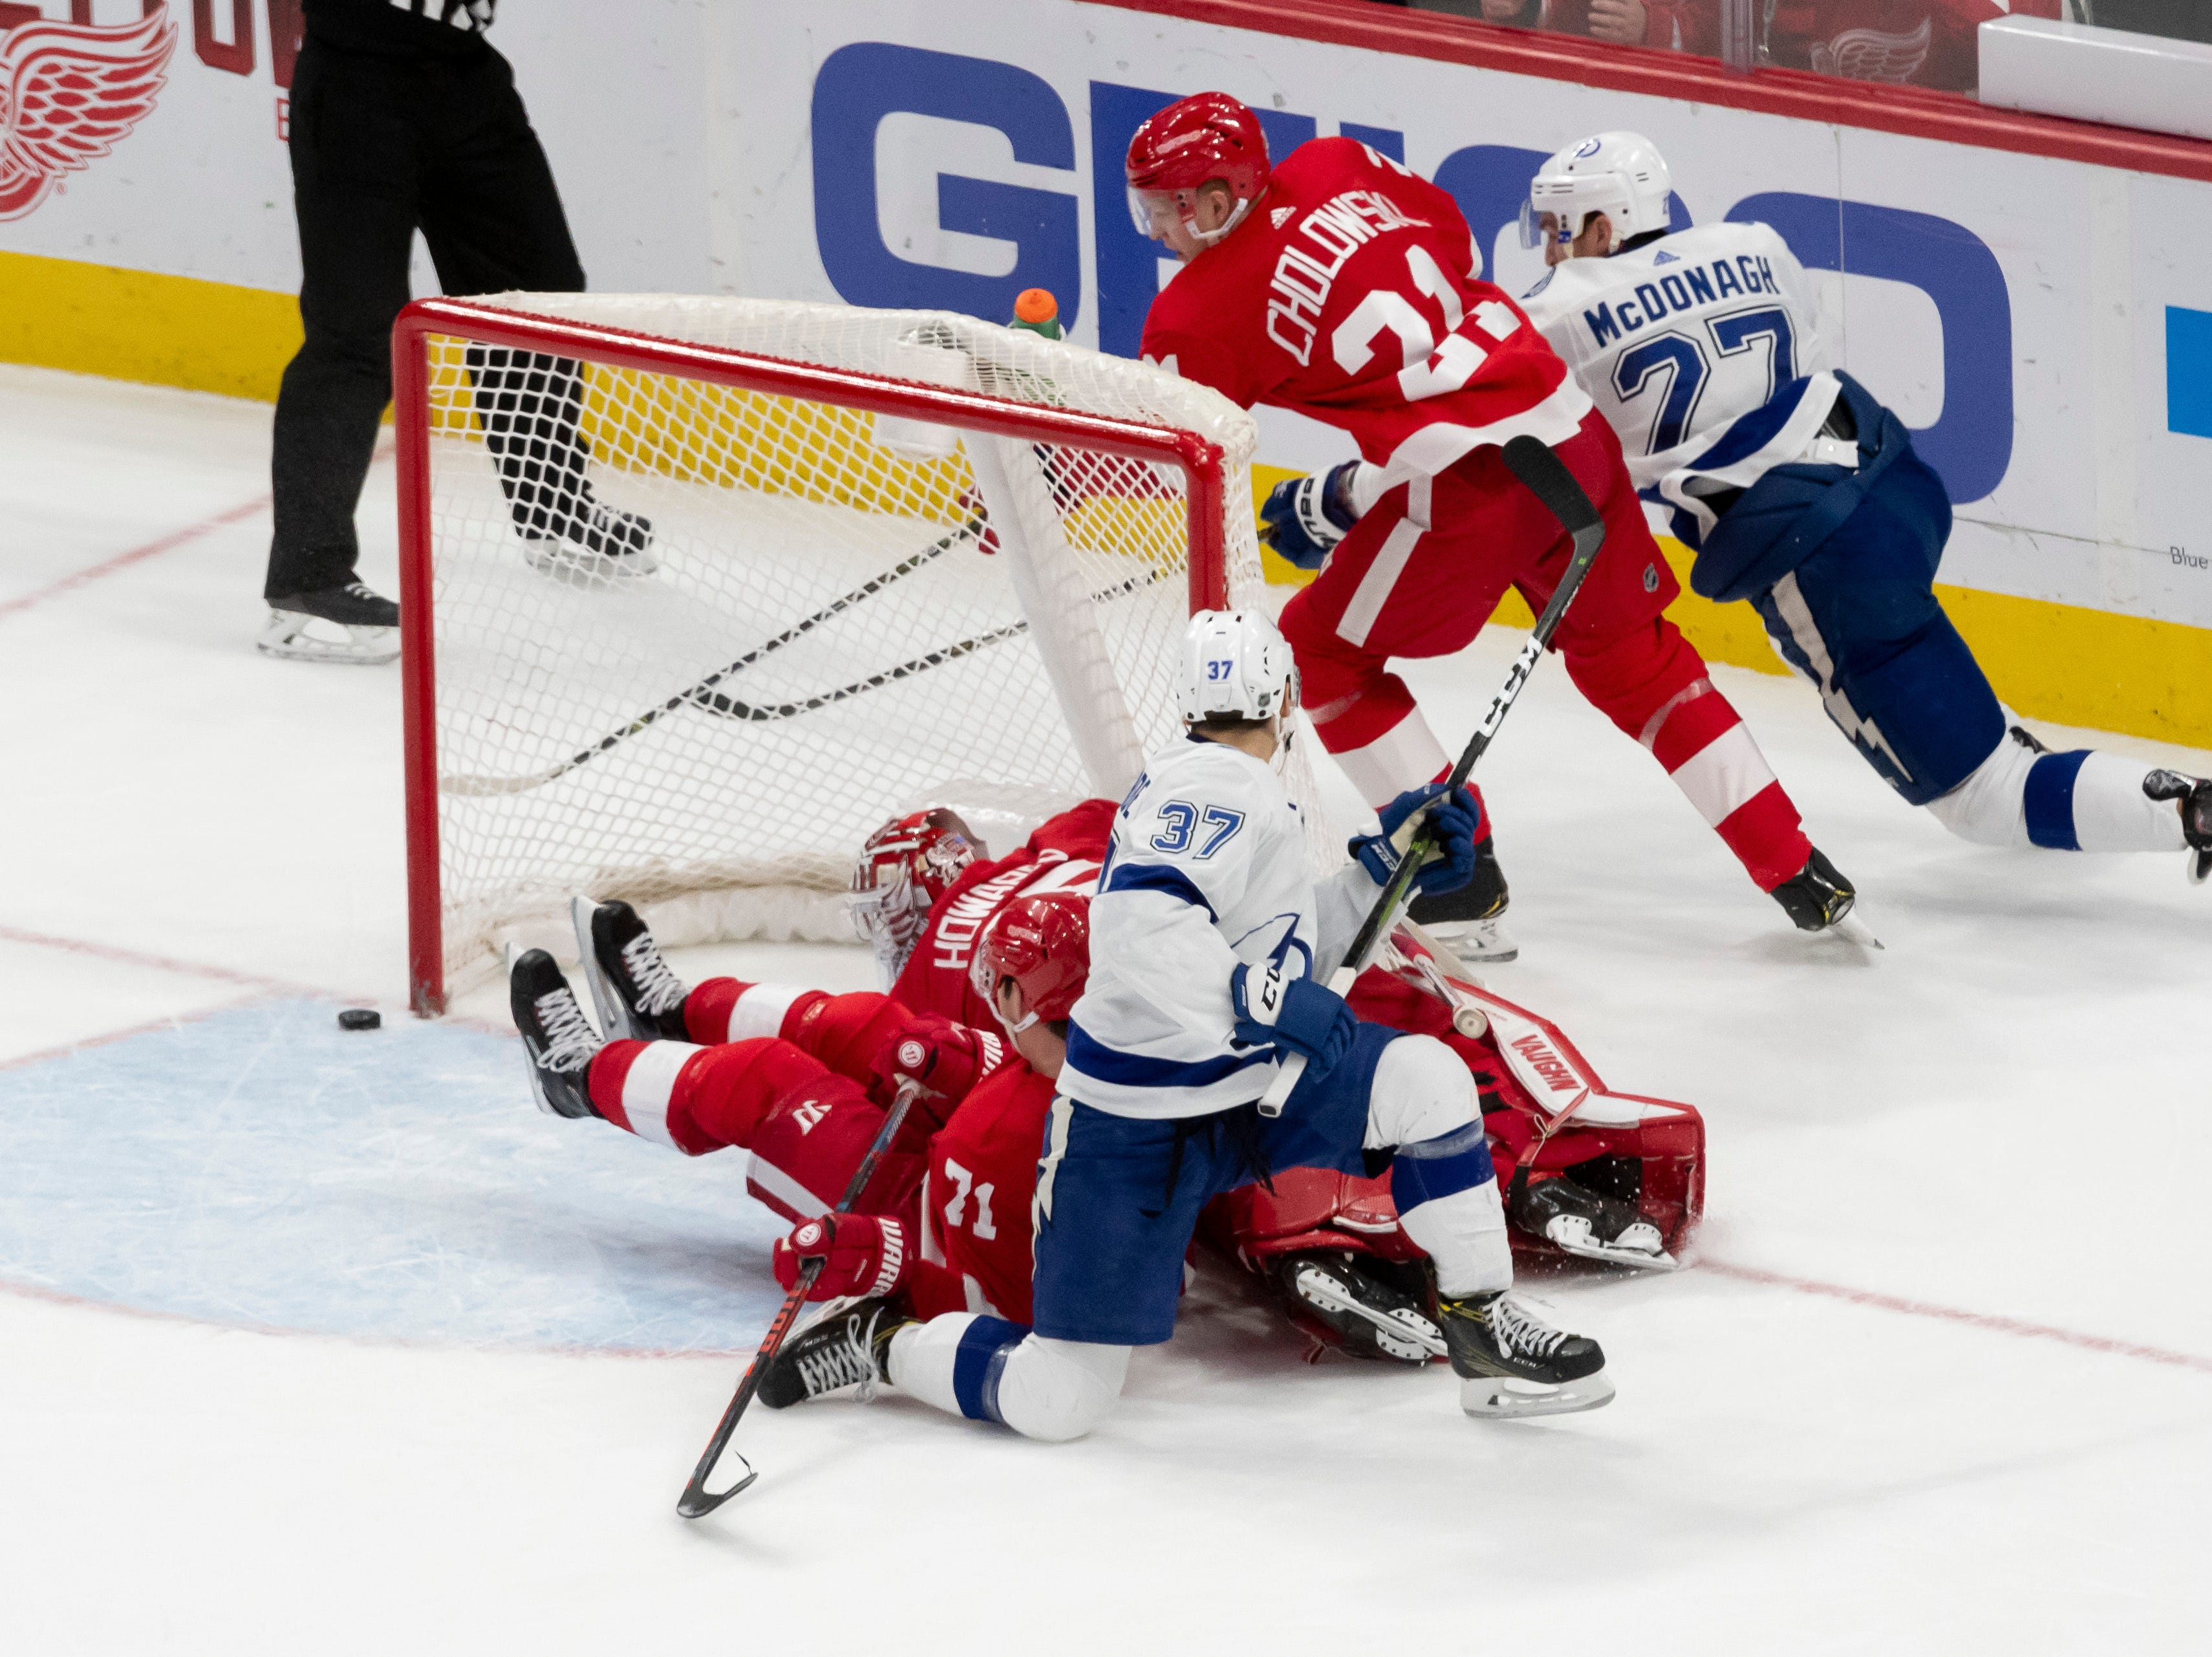 The puck comes perilously close to the net during a scrum in front of Detroit goaltender Jimmy Howard in the overtime period.